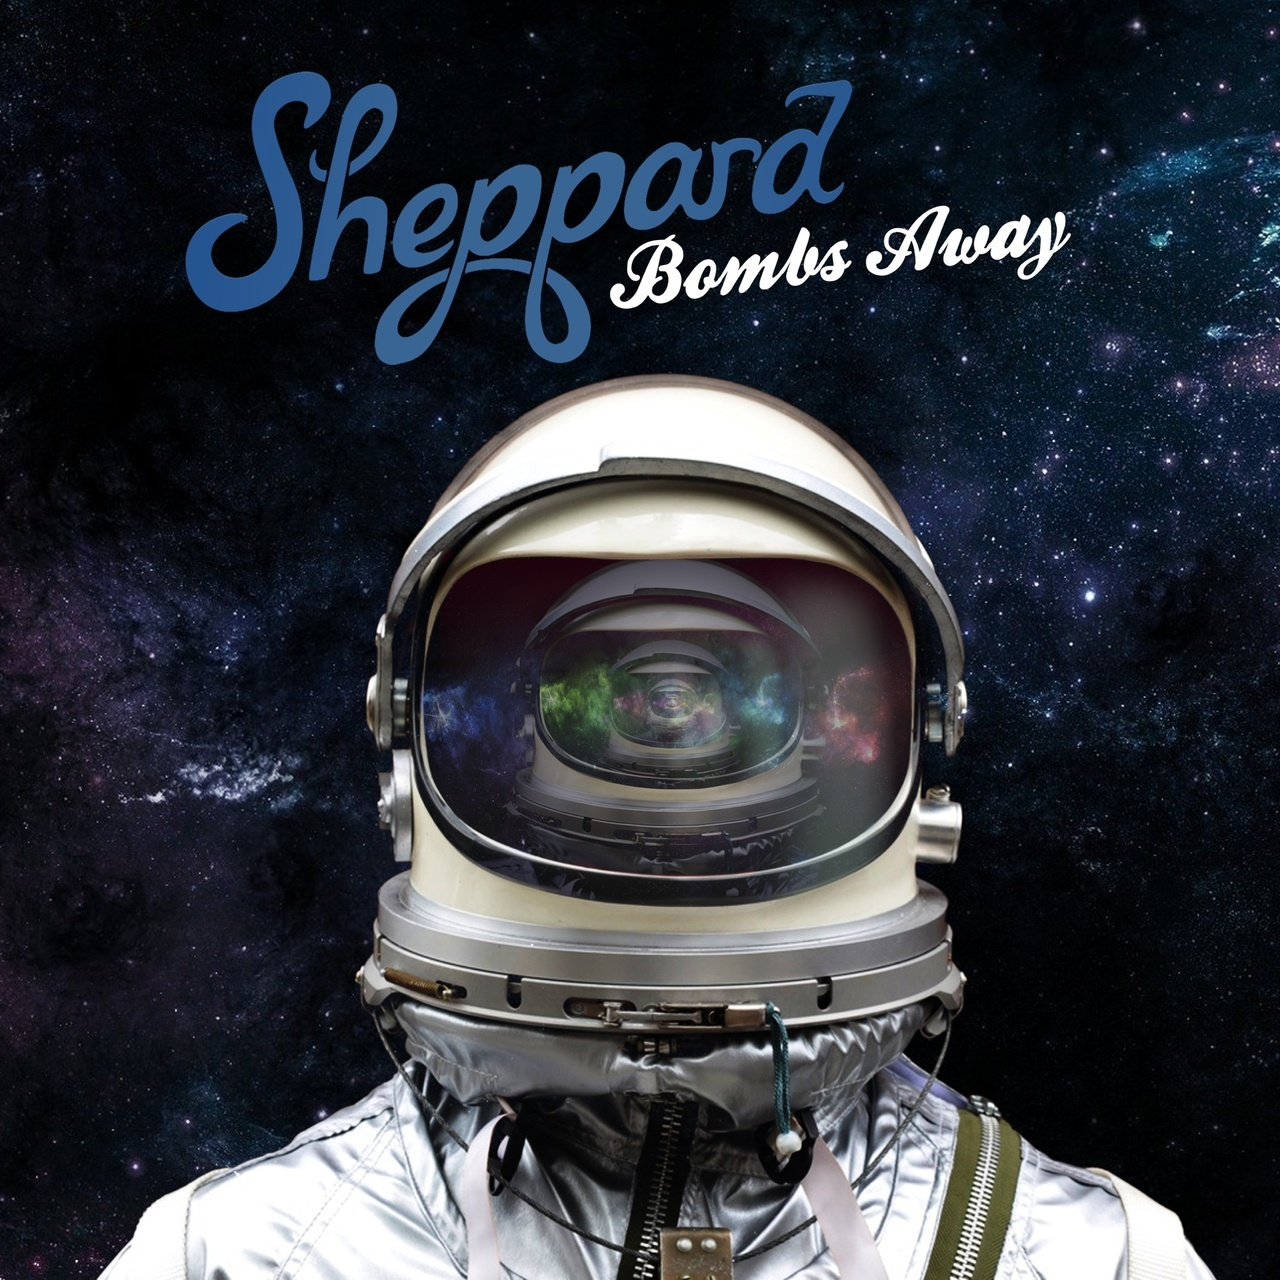 Sheppard - Bombs Away Vinyl